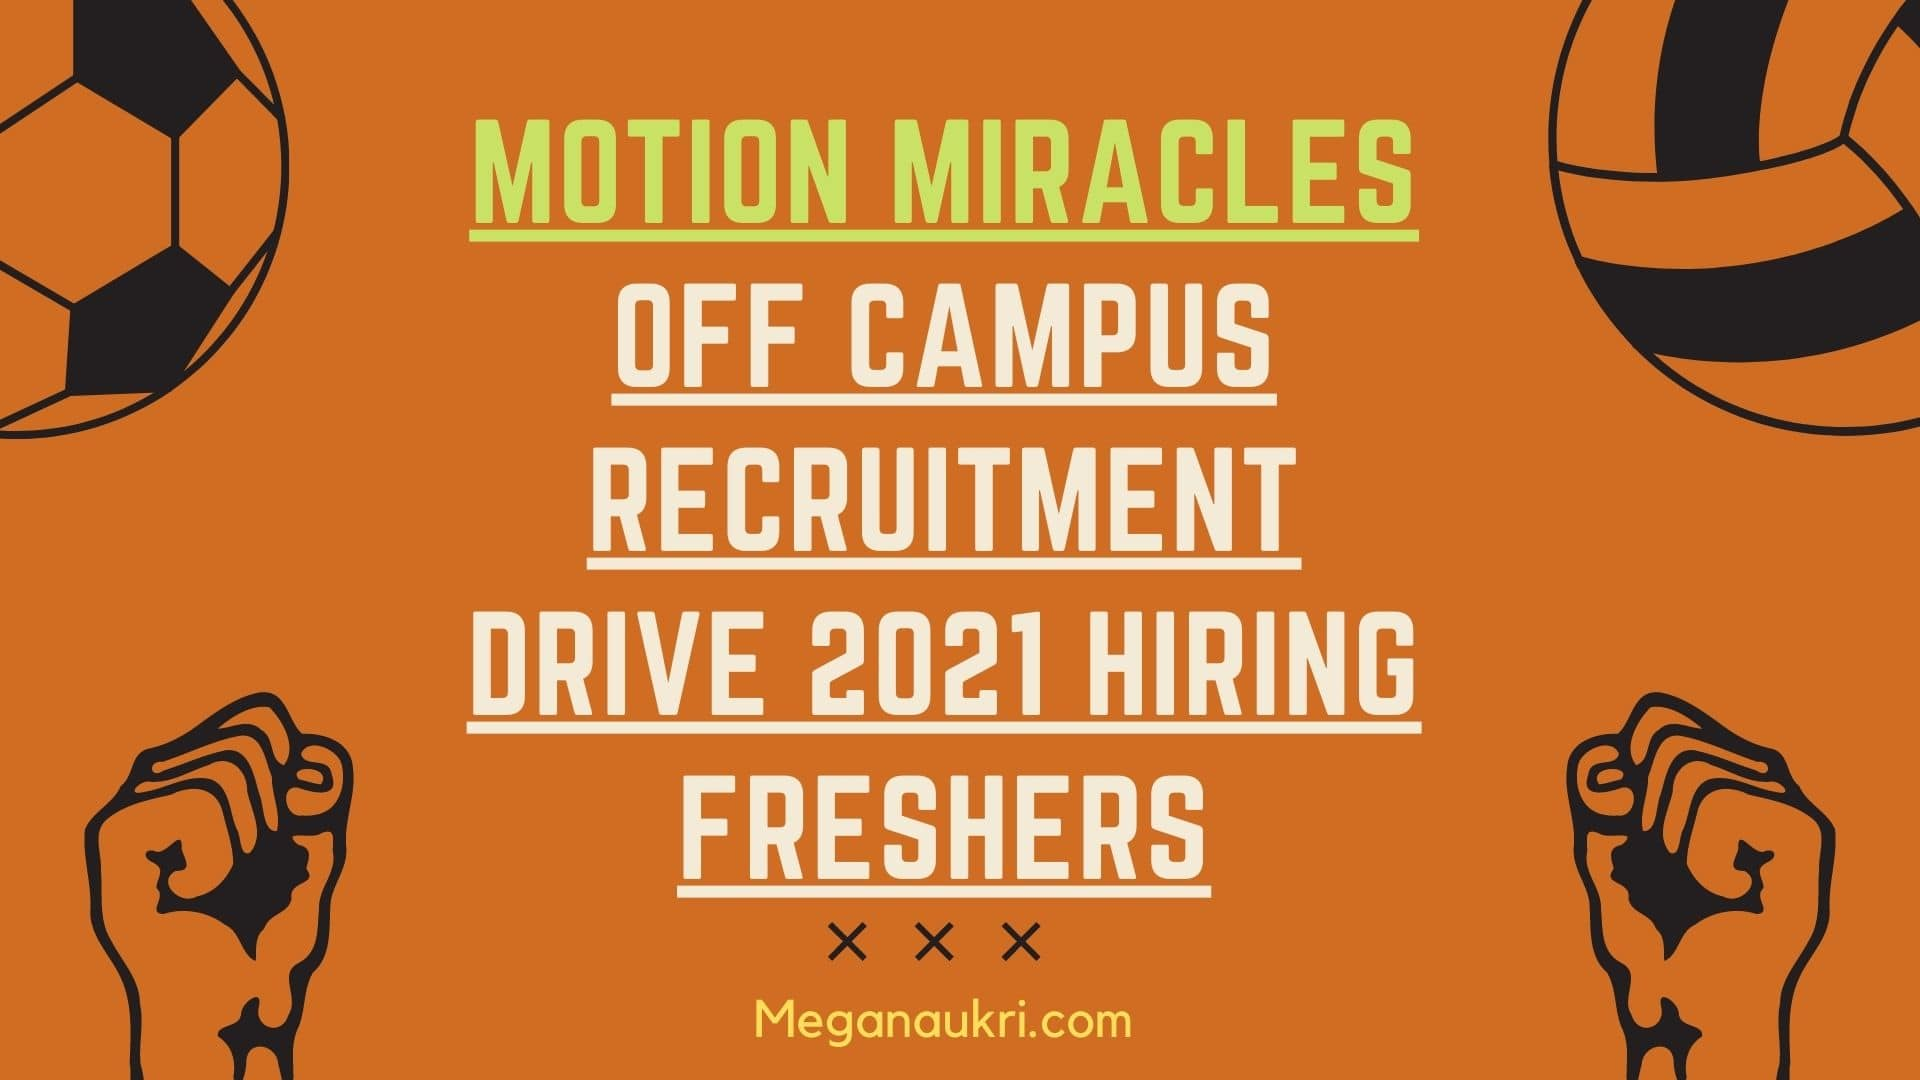 Motion-Miracles-Off-Campus-Recruitment-drive-2021-Hiring-Freshers